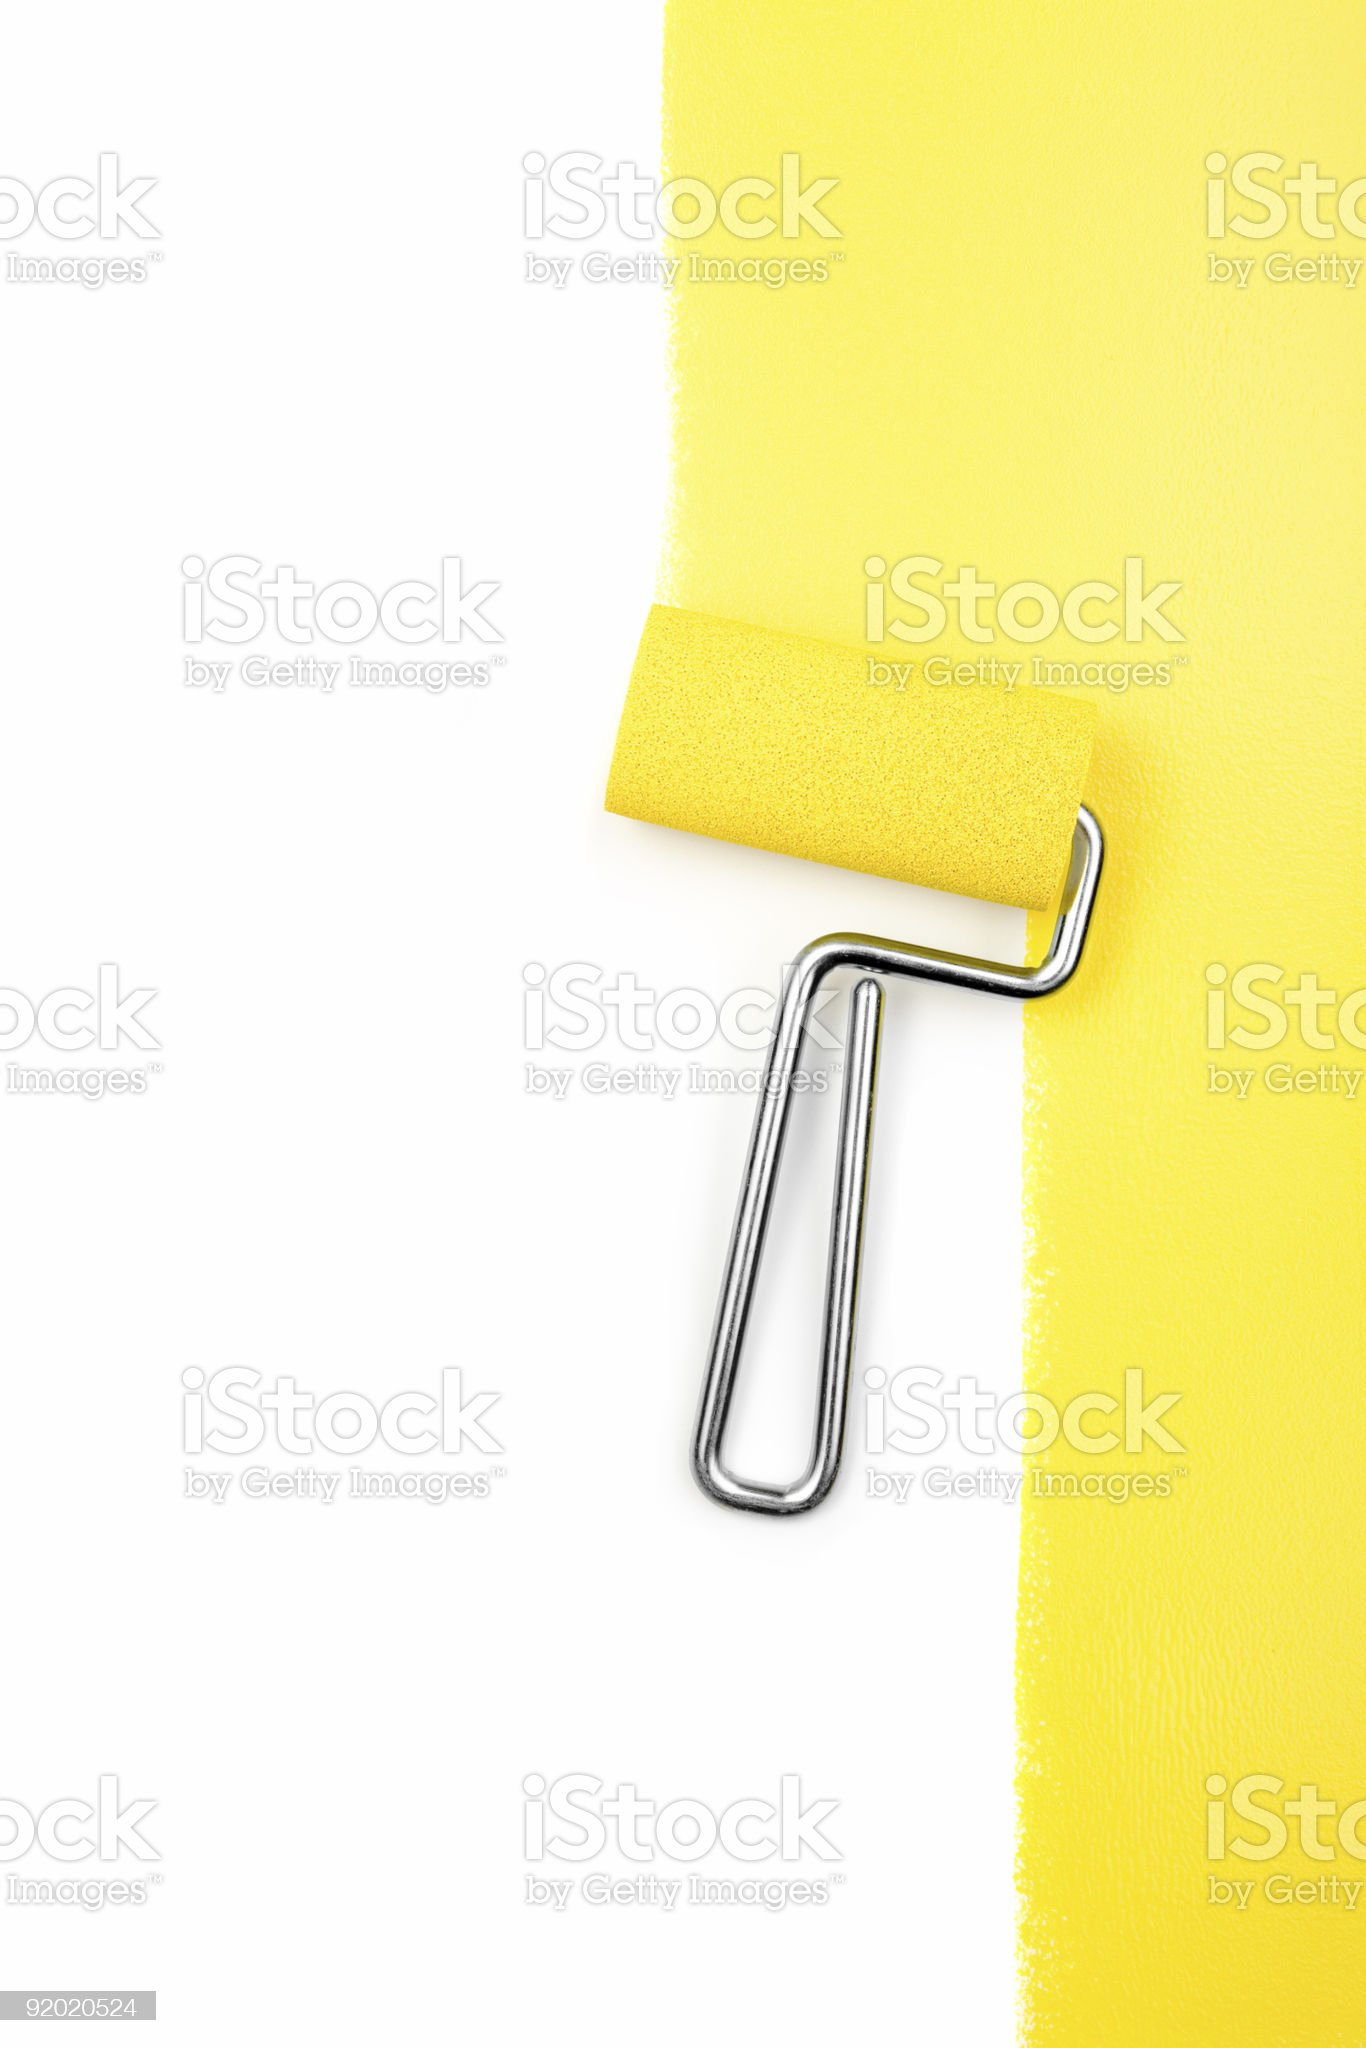 Painting - Home Improvement royalty-free stock photo